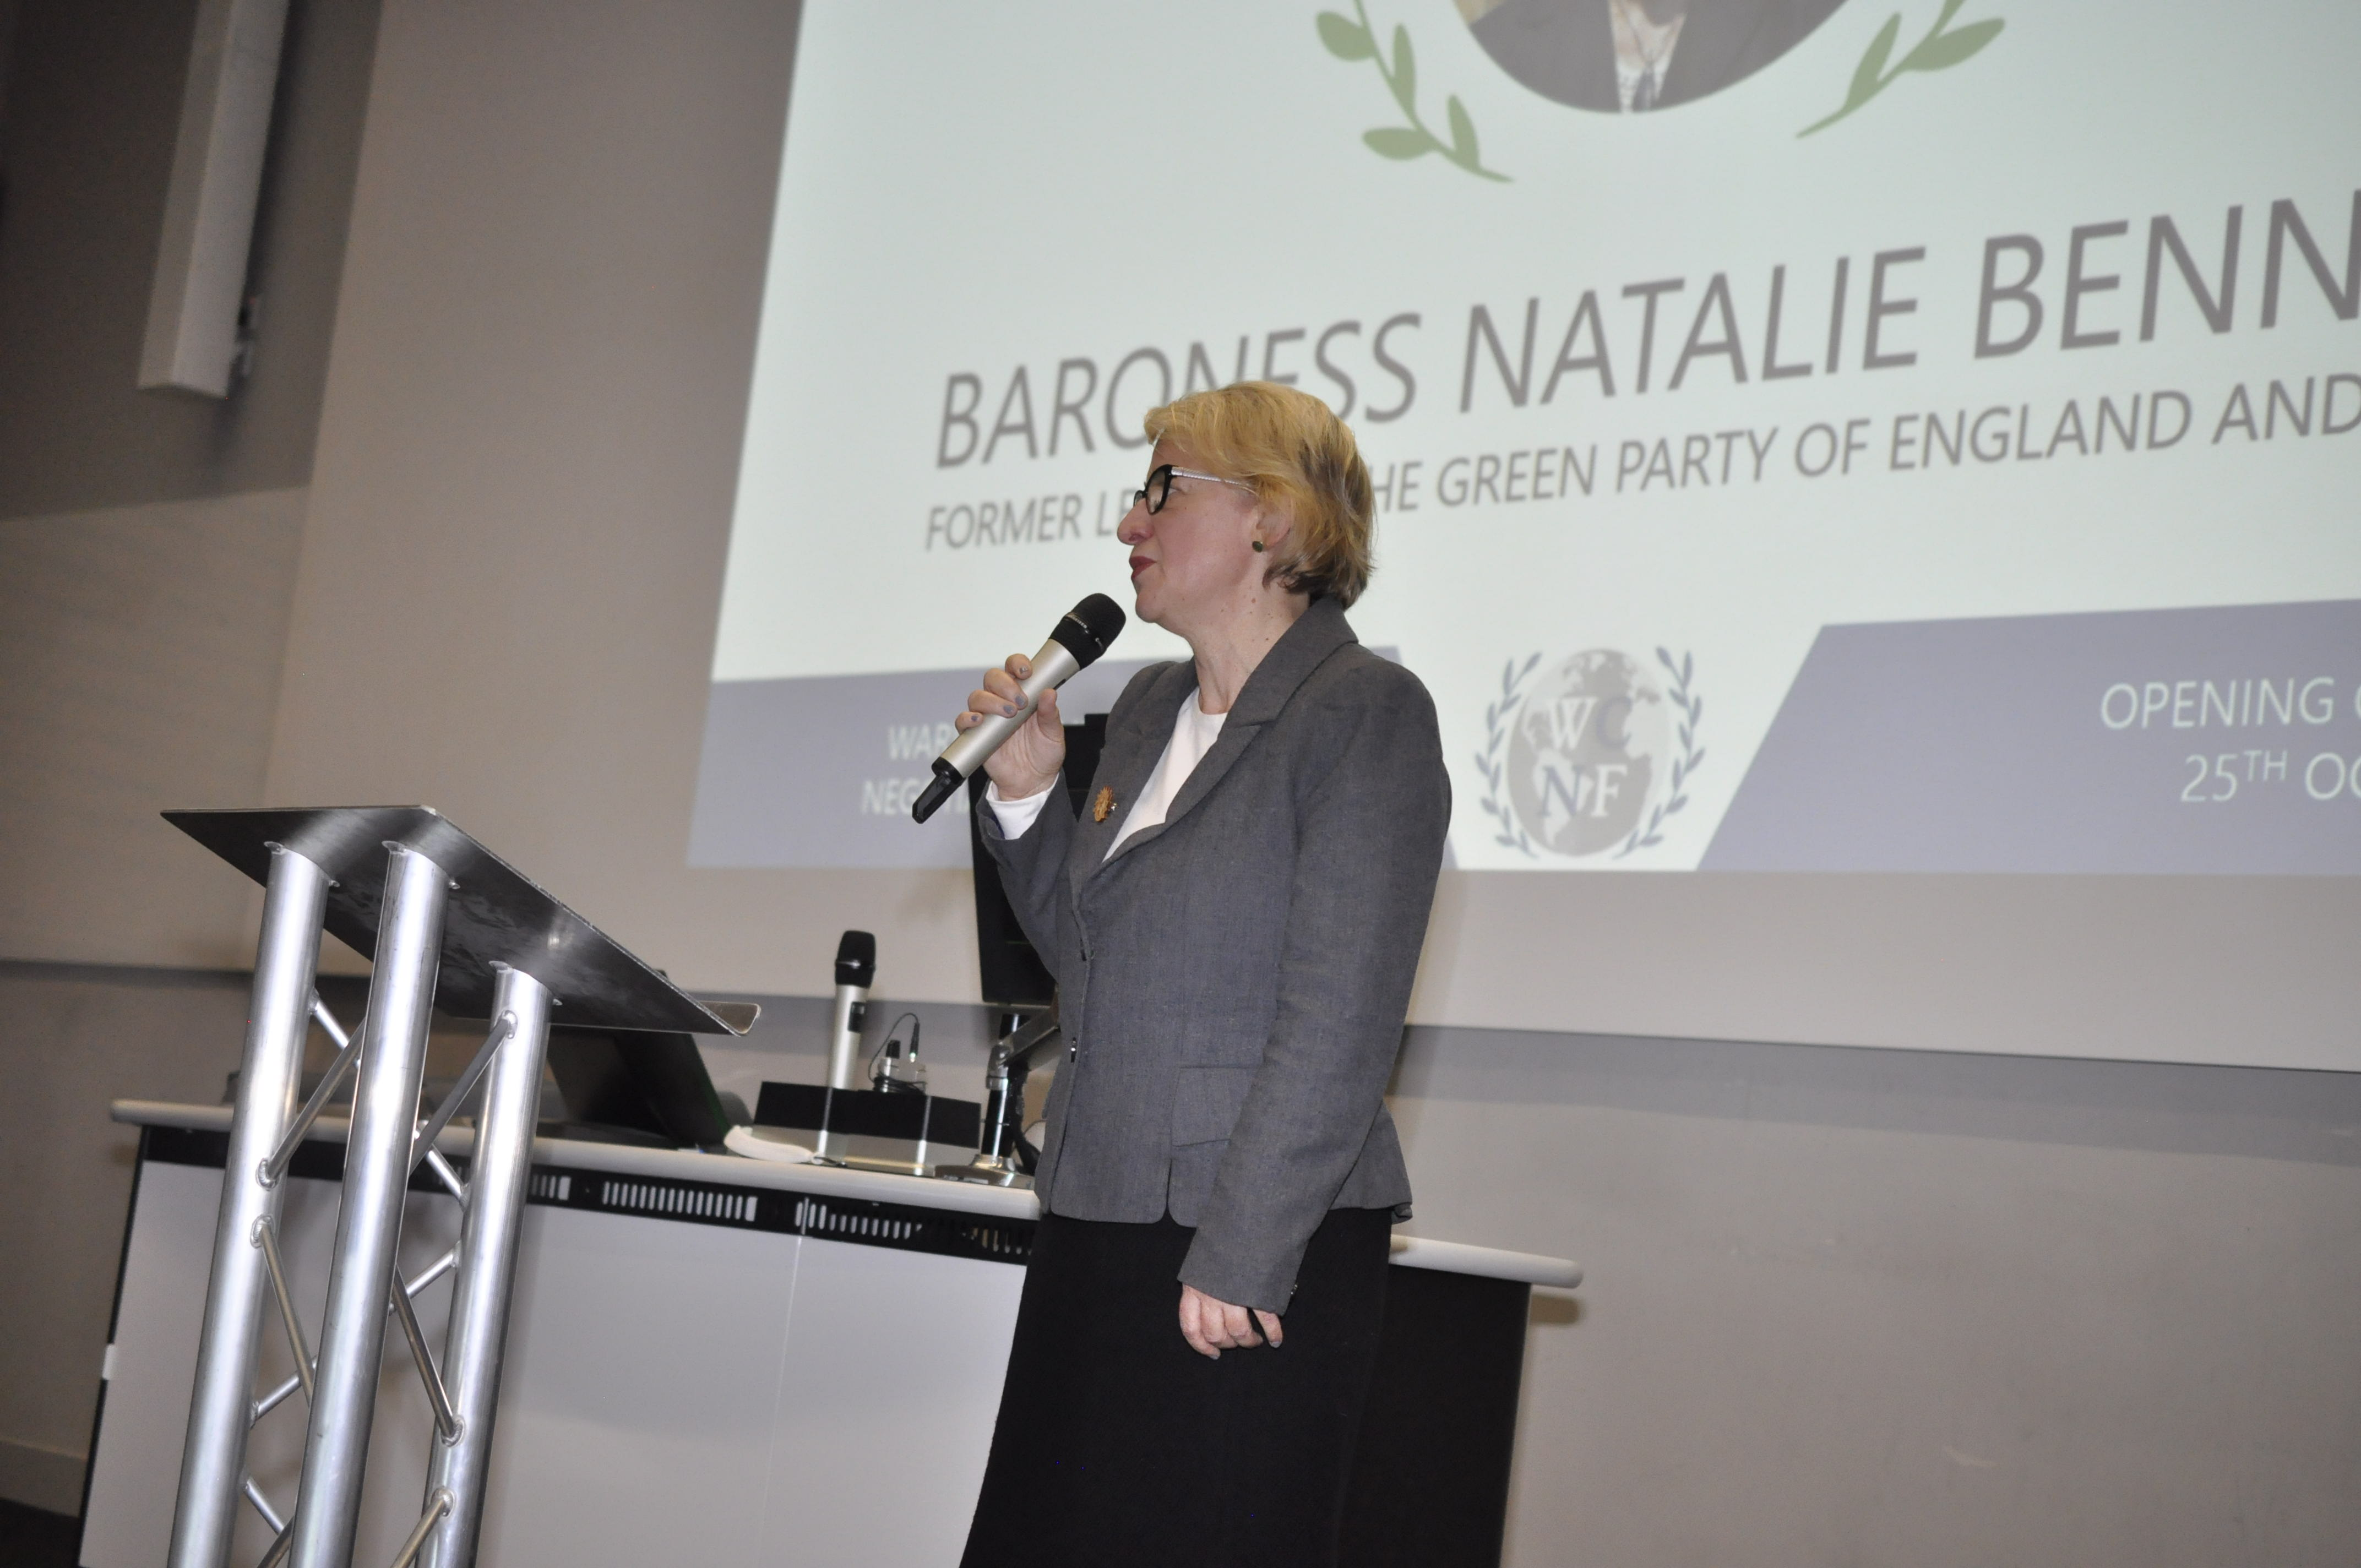 Natalie Bennett delivering a speech at the front of the lecture theatre